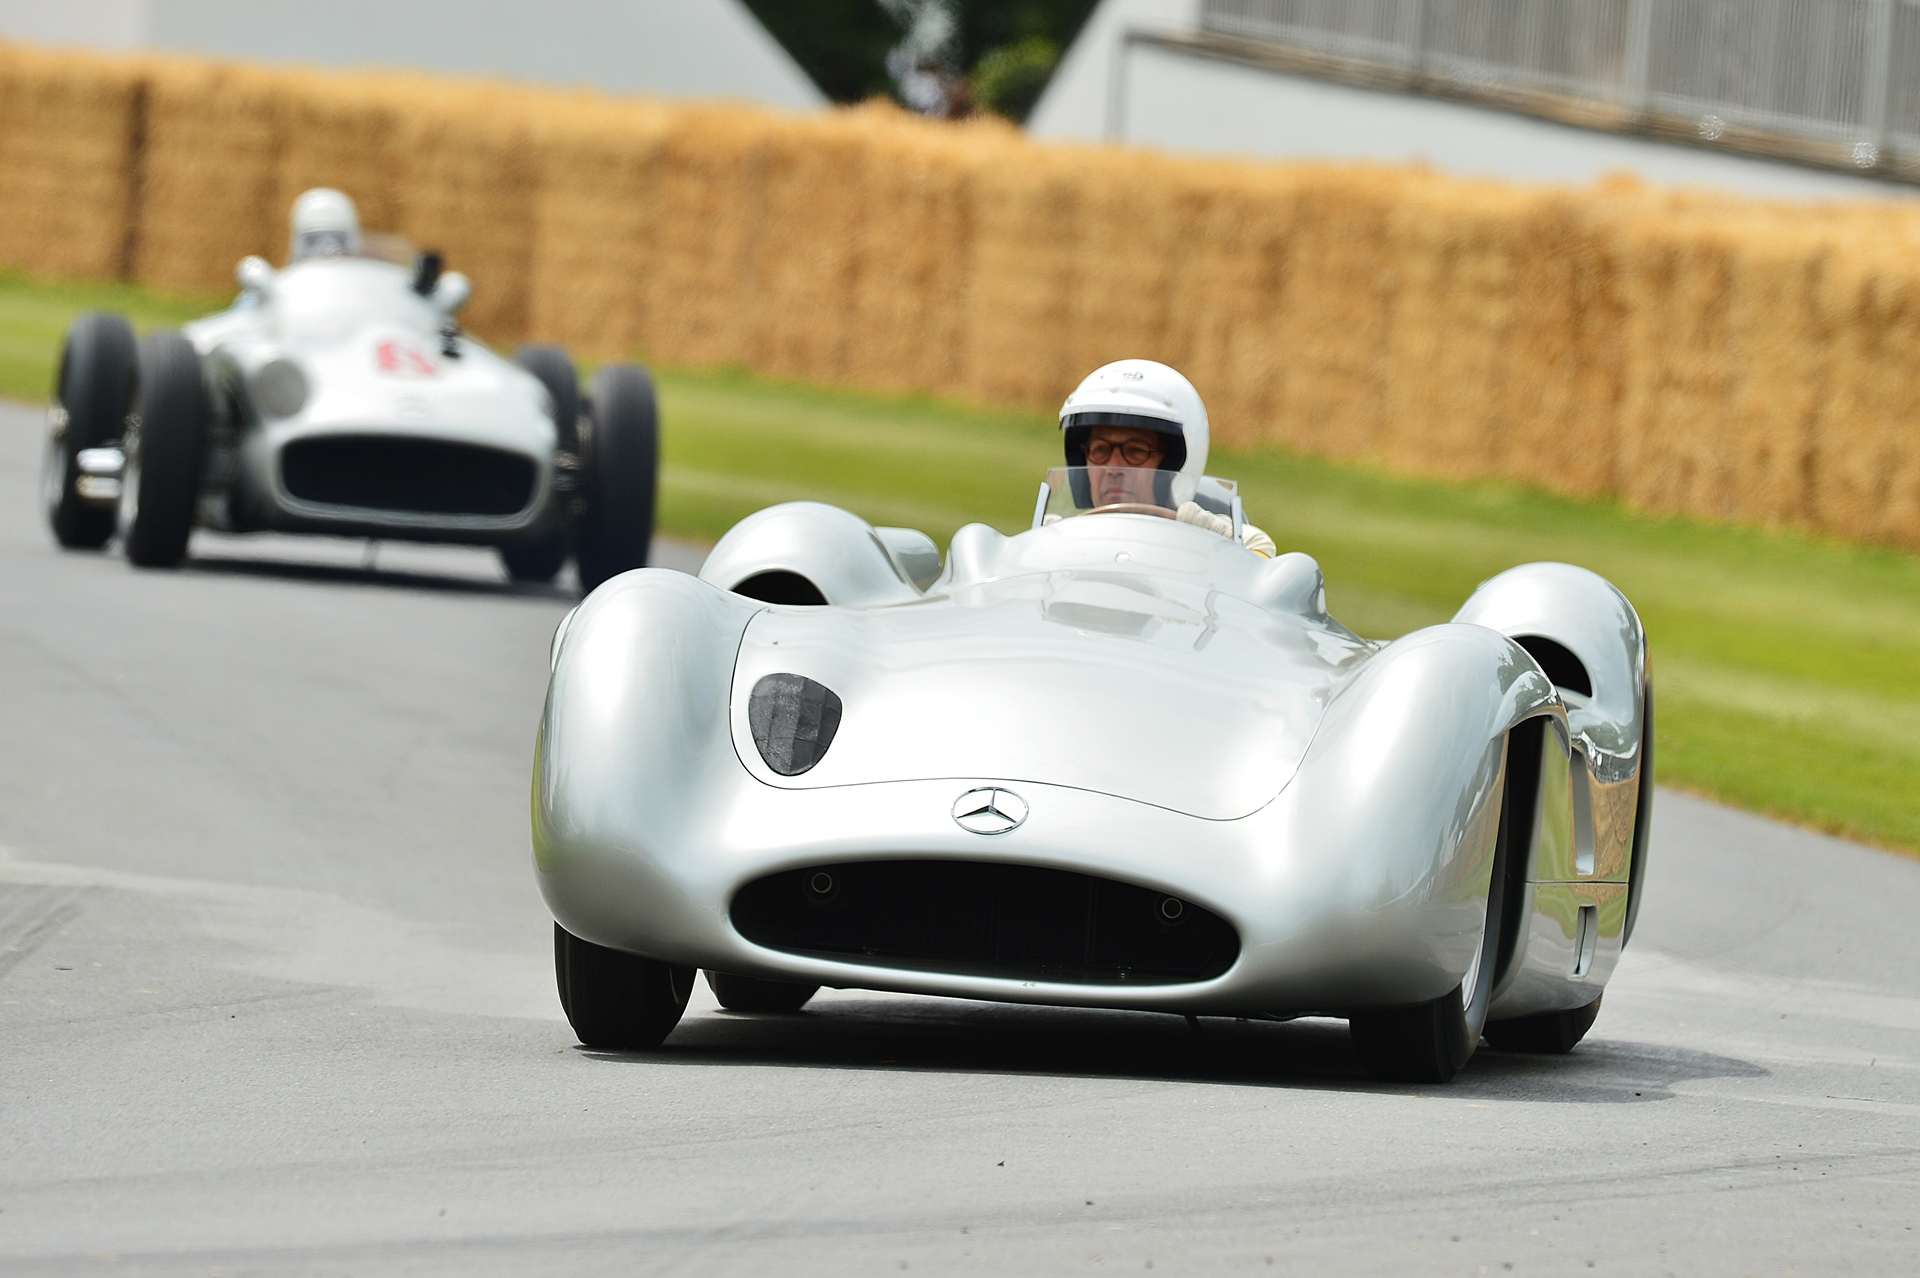 Goodwood-Mercedes-Benz-07